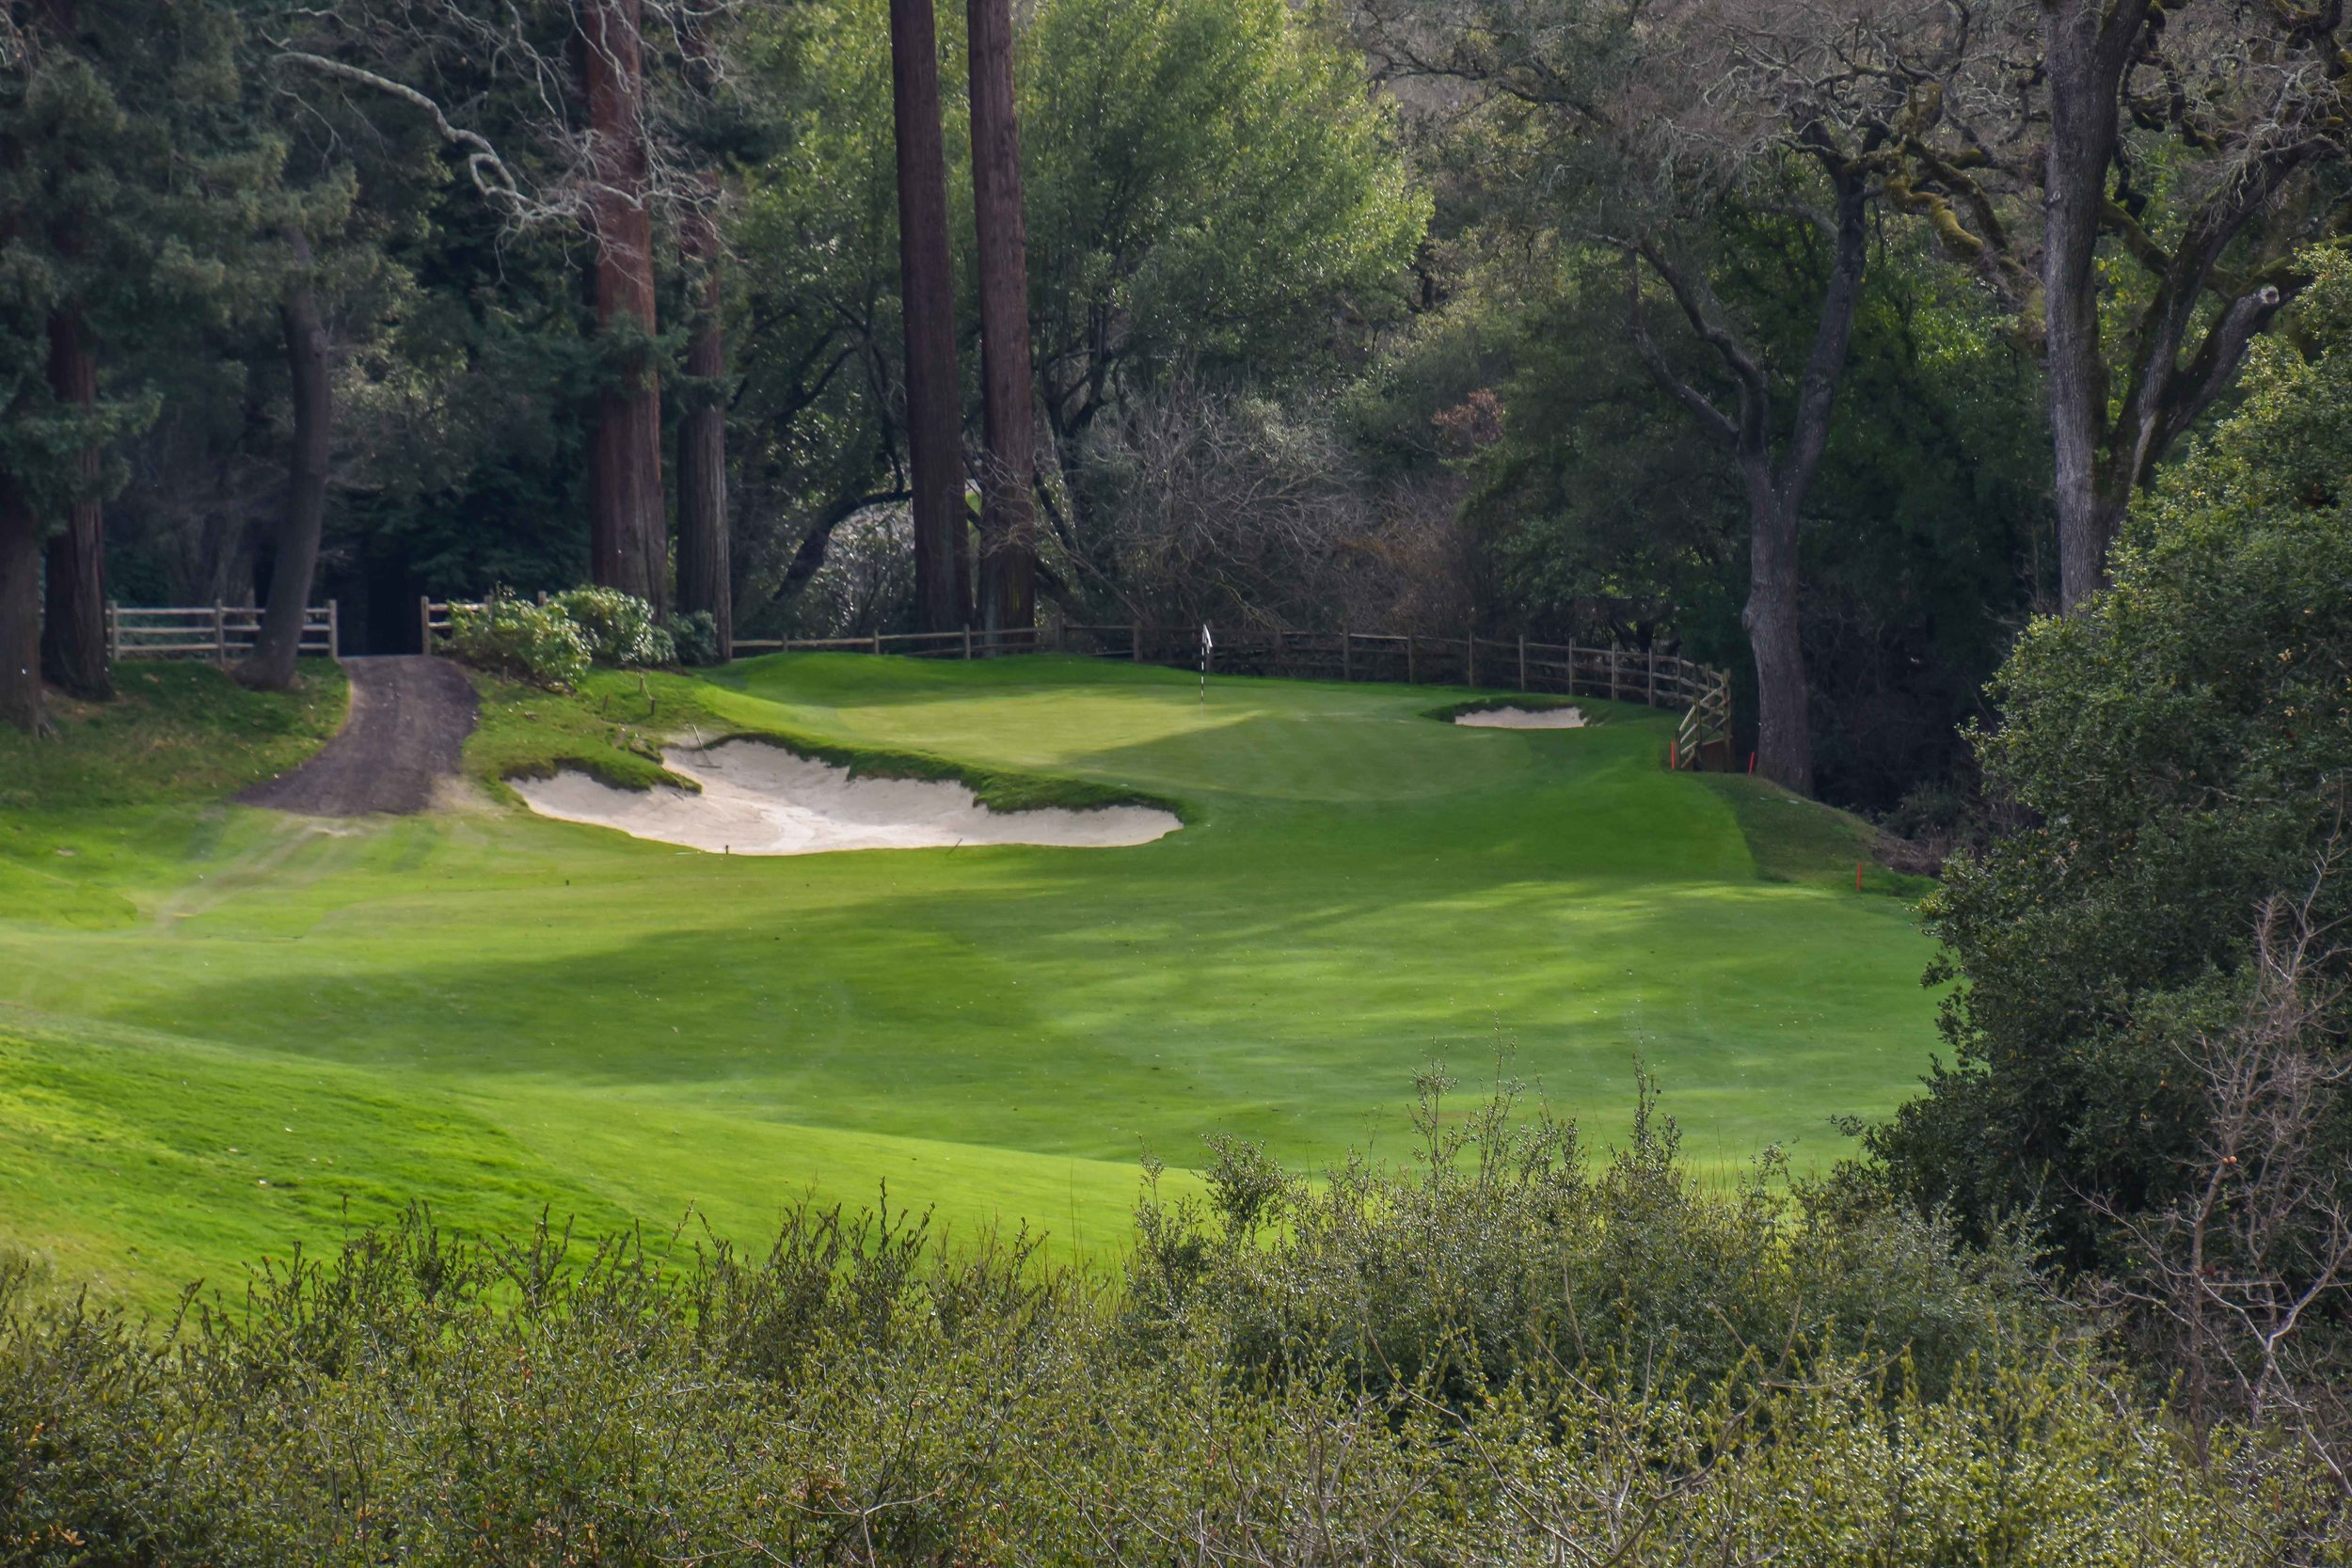 The 10th hole at Orinda Country Club has one of the coziest greens that the RGV Tour has encountered.